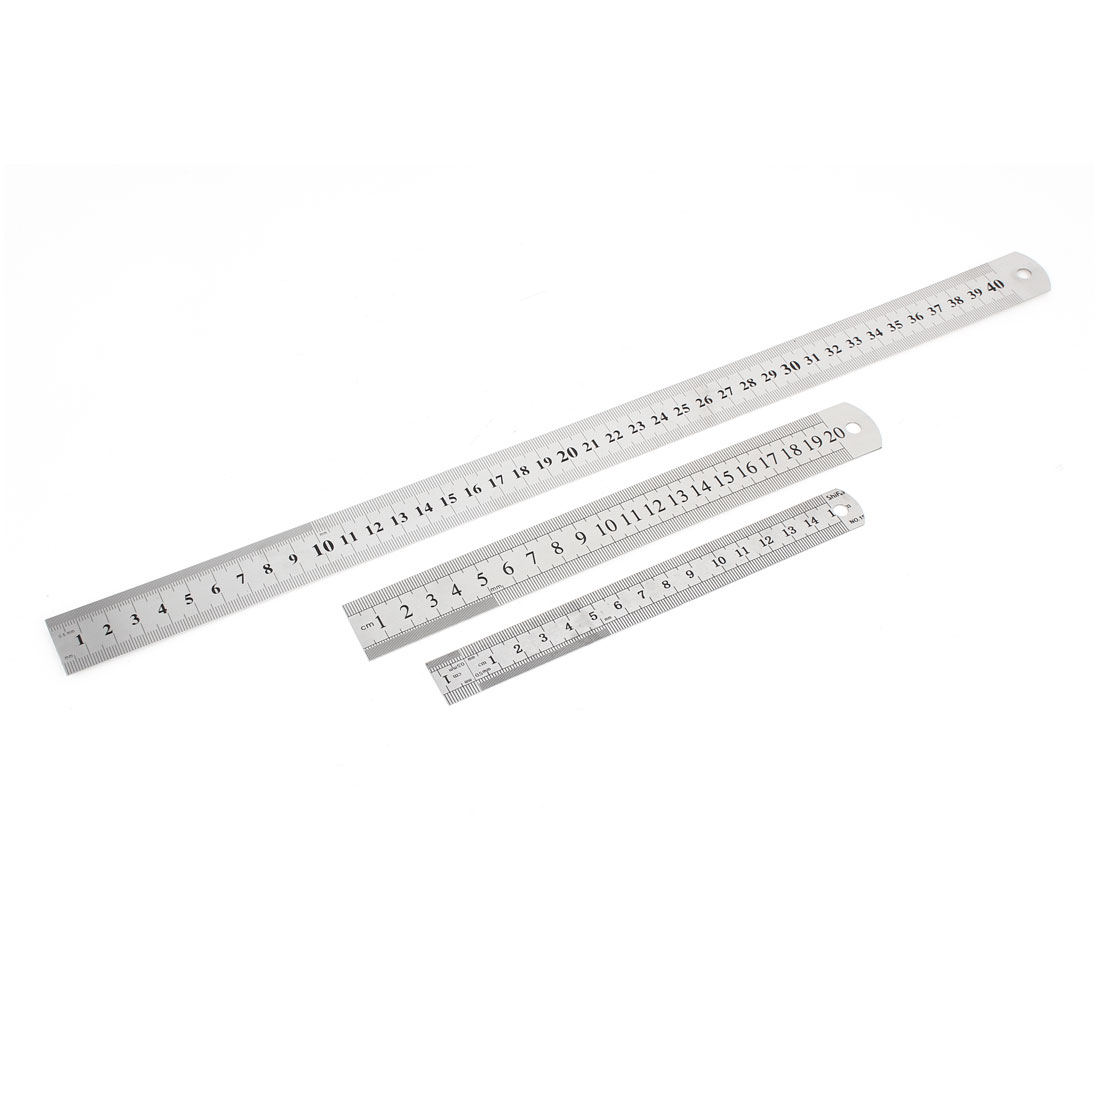 3 in 1 15cm 20cm 40cm Double Sides Students Metric Straight Ruler Silver Tone